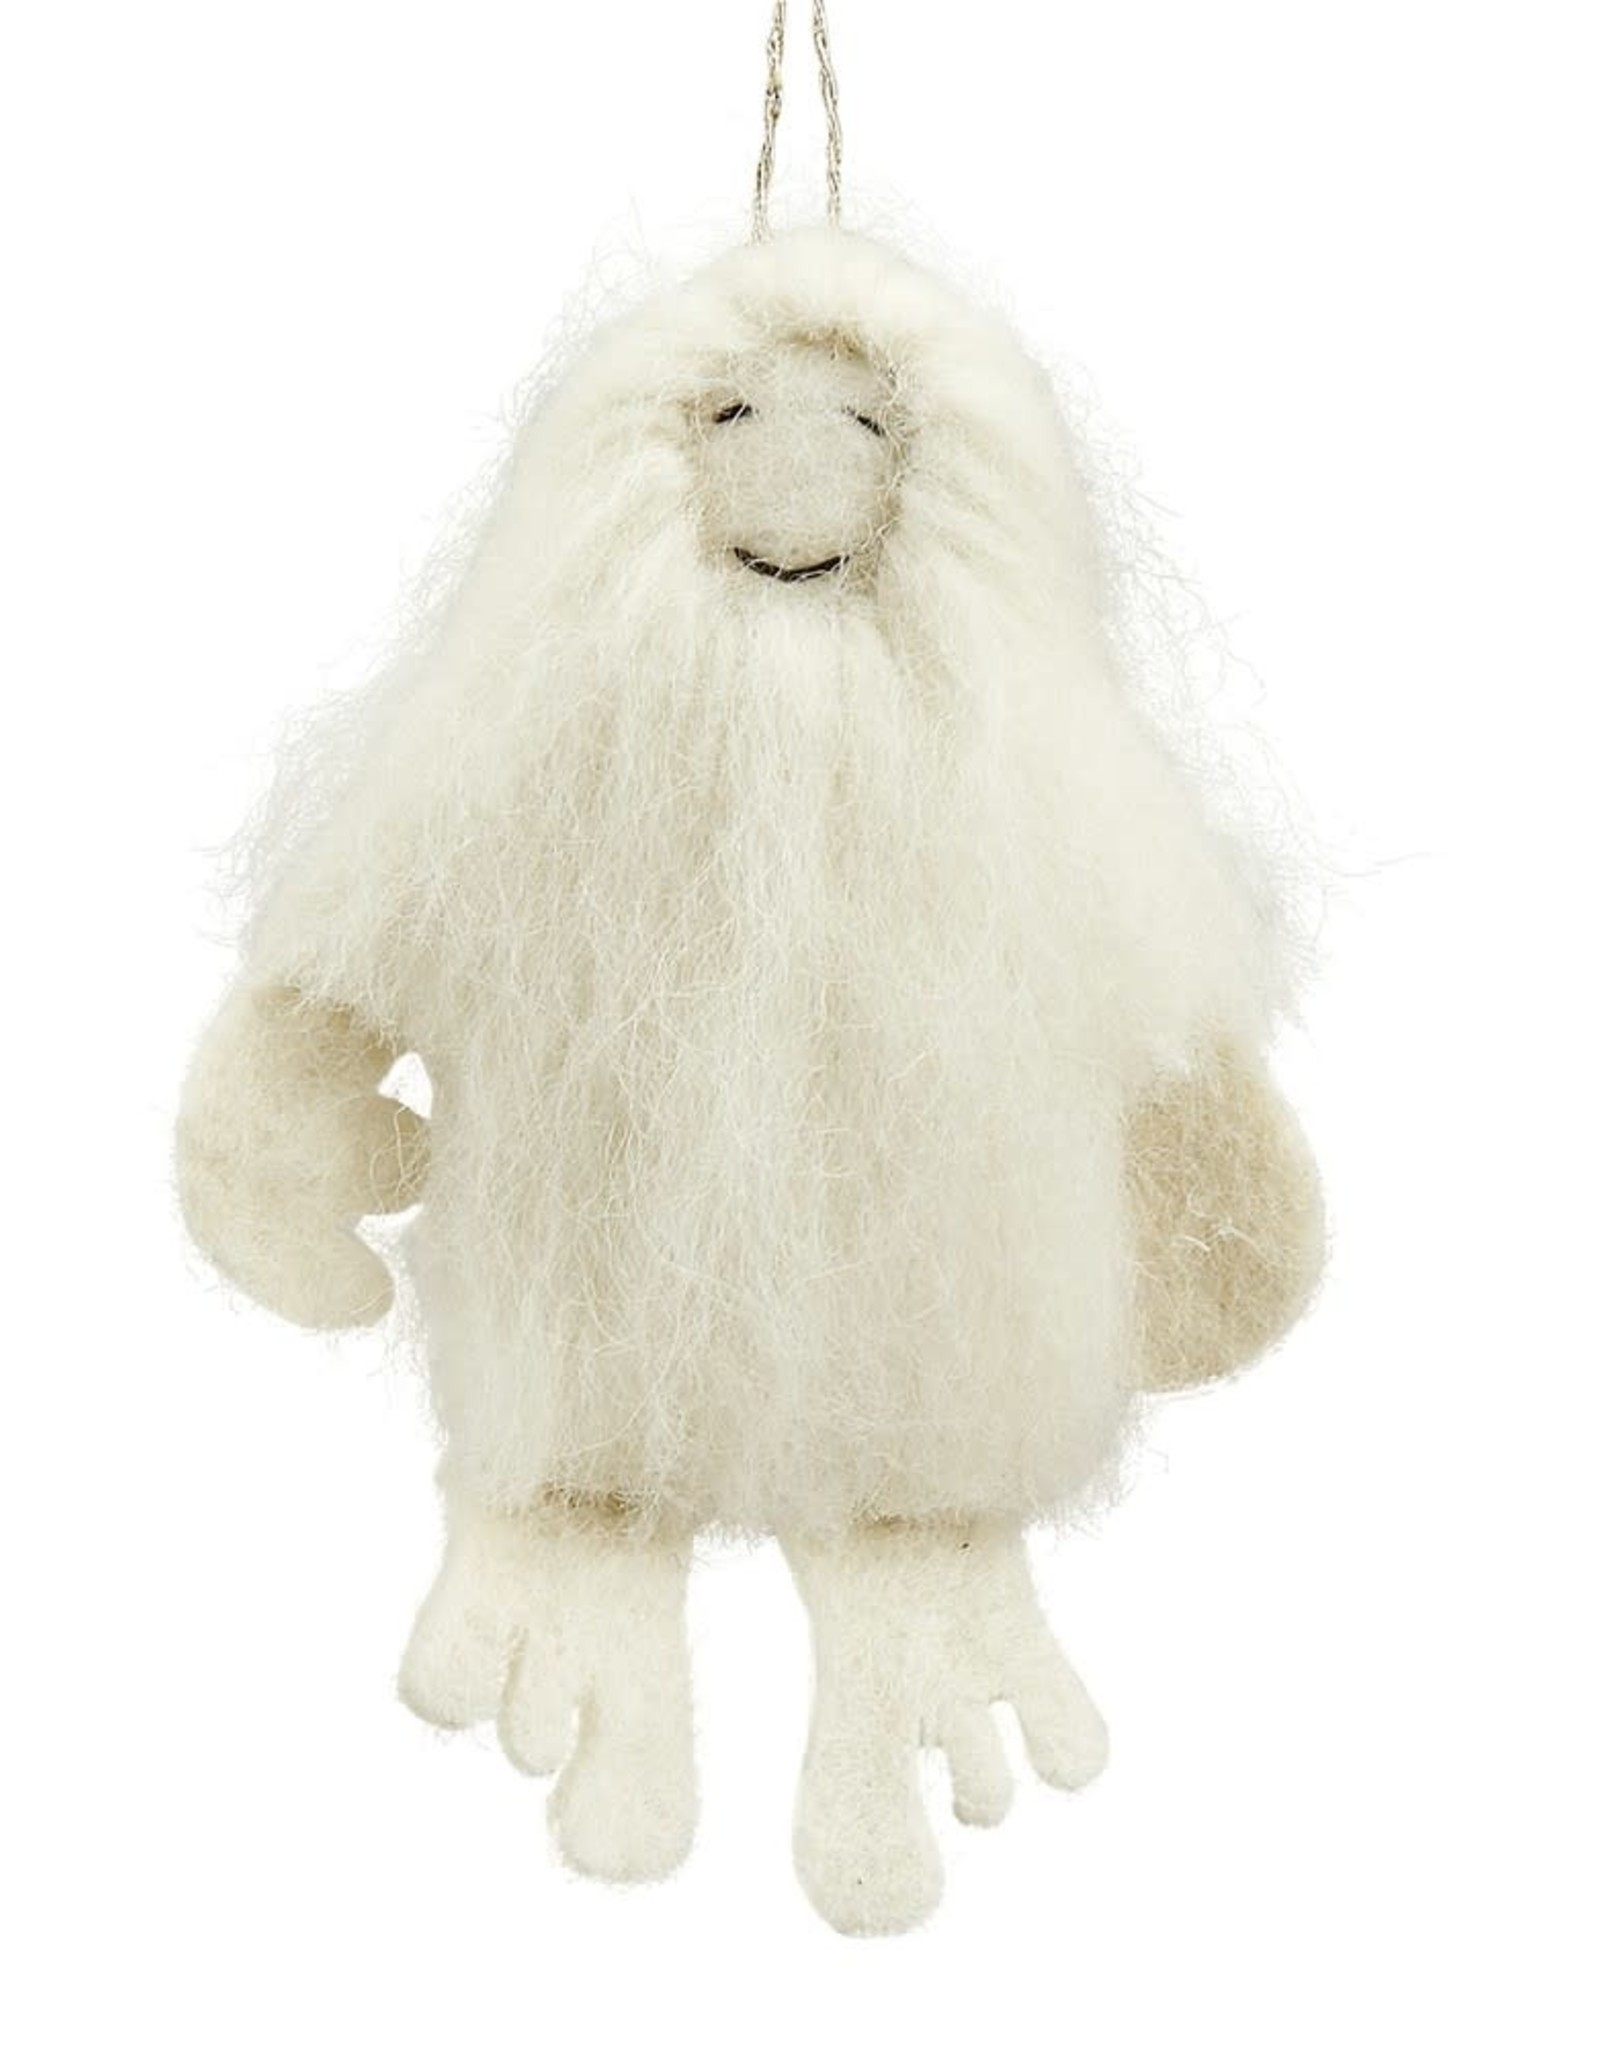 Snow Yeti Ornament